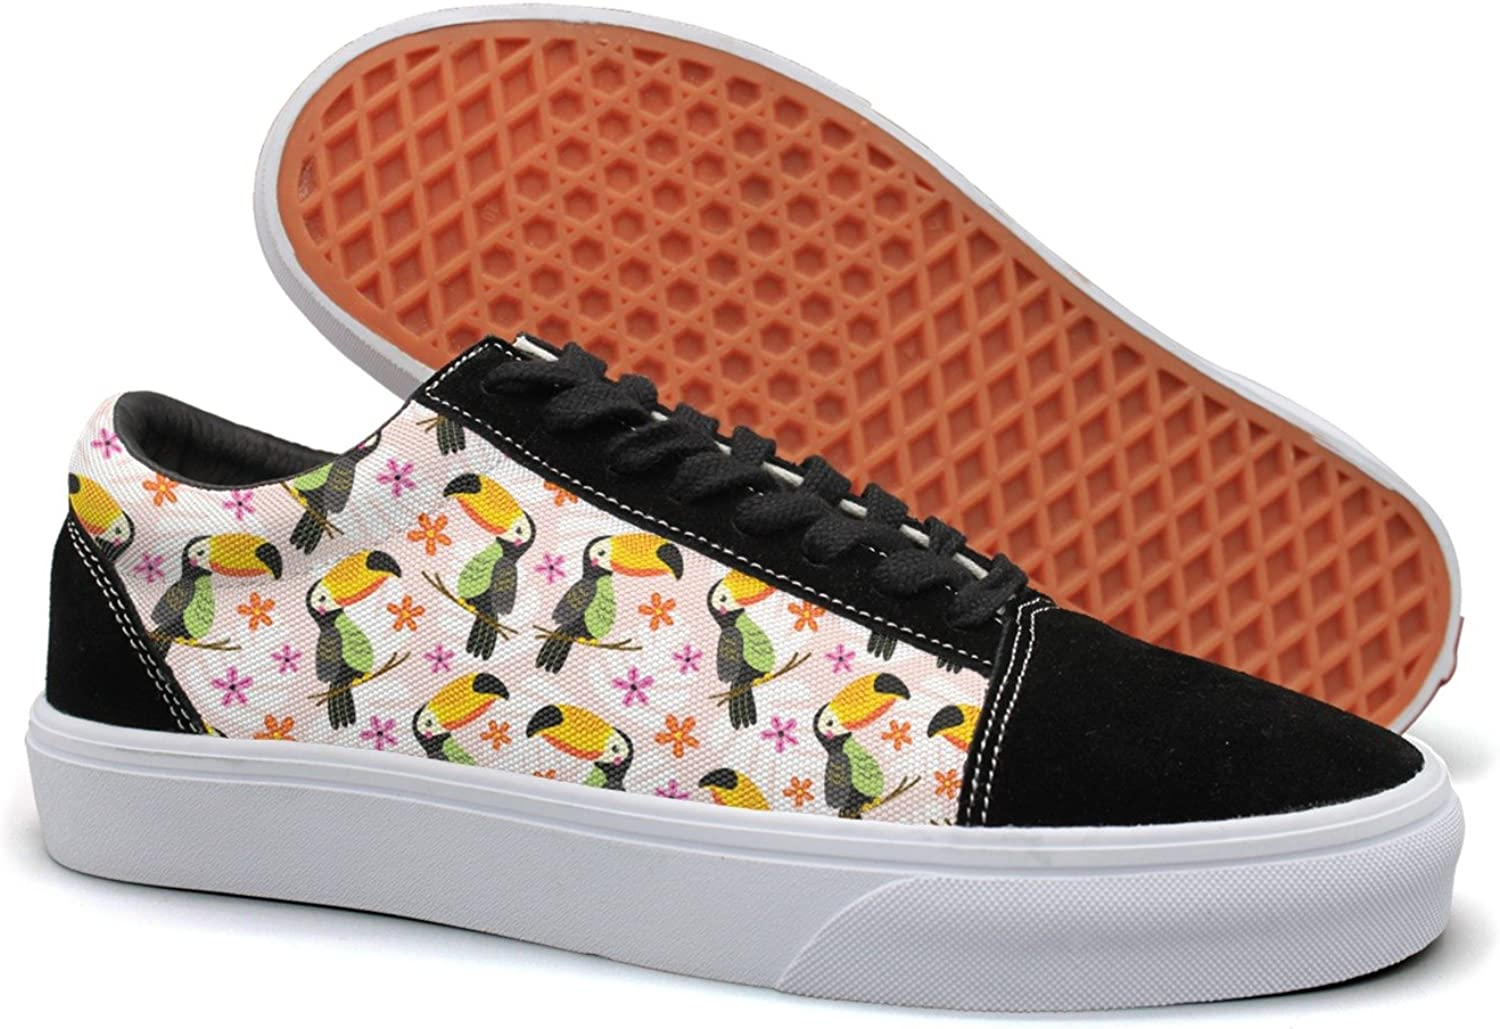 Hjkggd fgfds Casual Pet Toucan with Flowers Women Canvas shoes